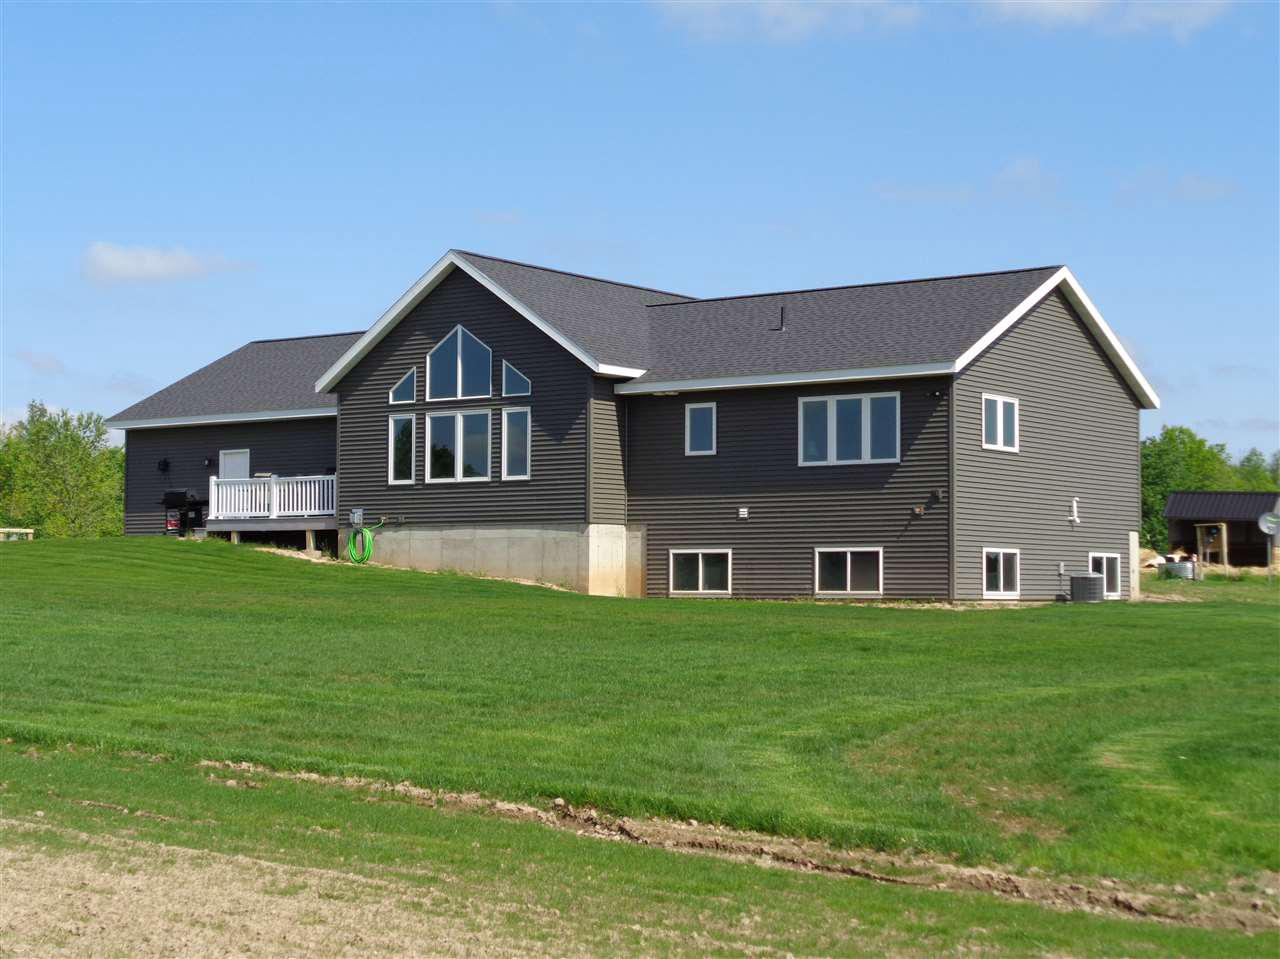 Beautiful 4+ bedroom, 3 bath ranch style home built in 2018. Home is located on +/- 80 acres. Features an open concept kitchen/living and dining room, custom built cabinets and brand new appliances. Property also features a central vacuum system, main floor laundry room with built in shelving, 3 season room, deck and 4 car insulated and heated attached garage. Lower level is finished with a family room, two bedrooms and bonus room. Drilled well and mound septic system. The stove, refrigerator, microwave, dishwasher, washer, dryer, pool table, lean-to and carport are included in the sale price.   The land features +/- 80 acres with a nice trail system, rolling hills, abundant wildlife, food plots and a pond. 1/4 mile rifle range located on property. Seller to plant 500 trees in the spring of 2019 including white oak, red pine, white spruce and cranberry bushes.